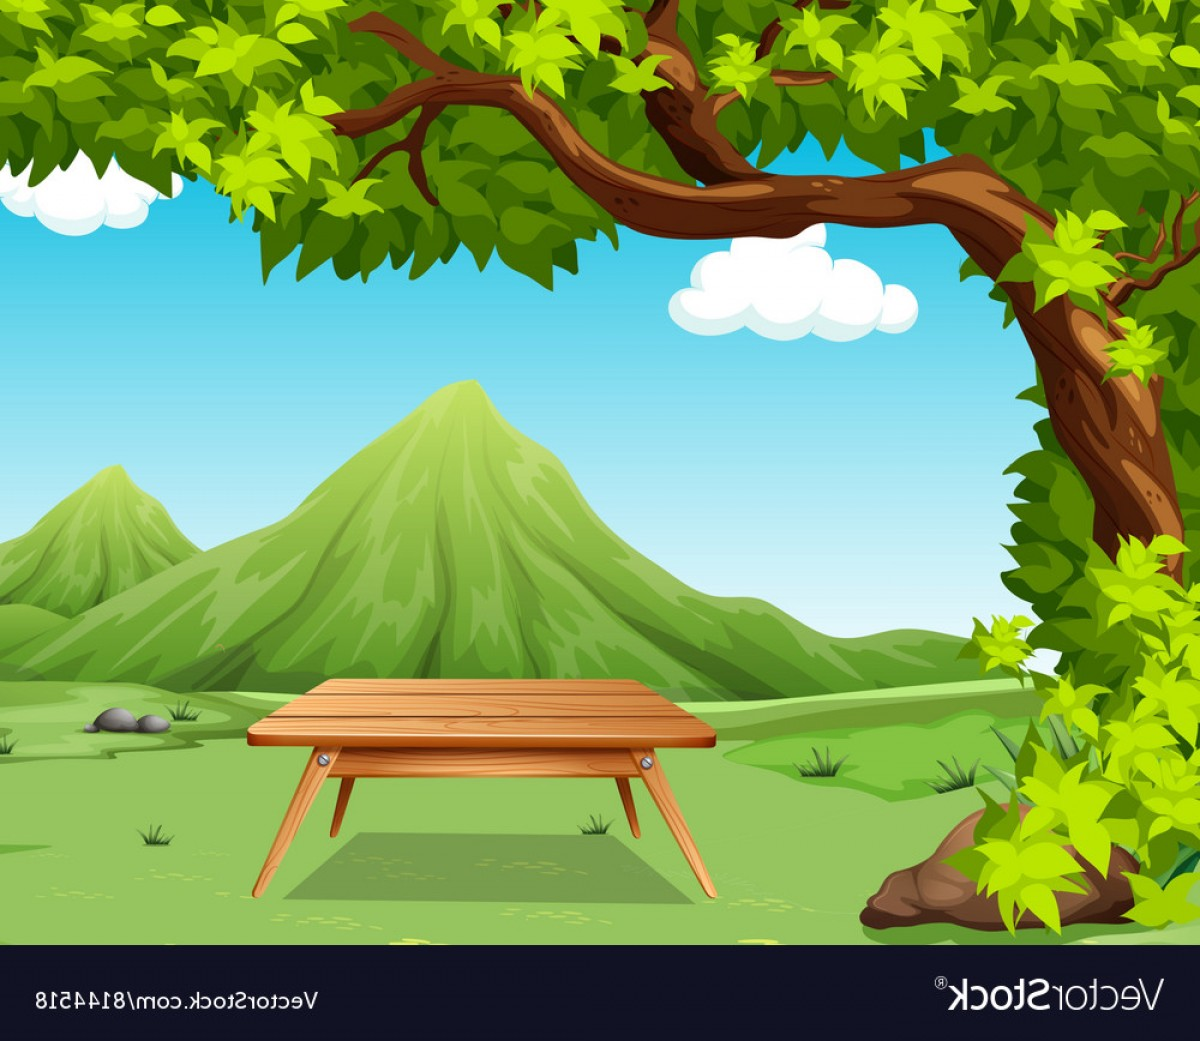 Picnic Vector Scenery: Nature Scene With Picnic Table In The Park Vector